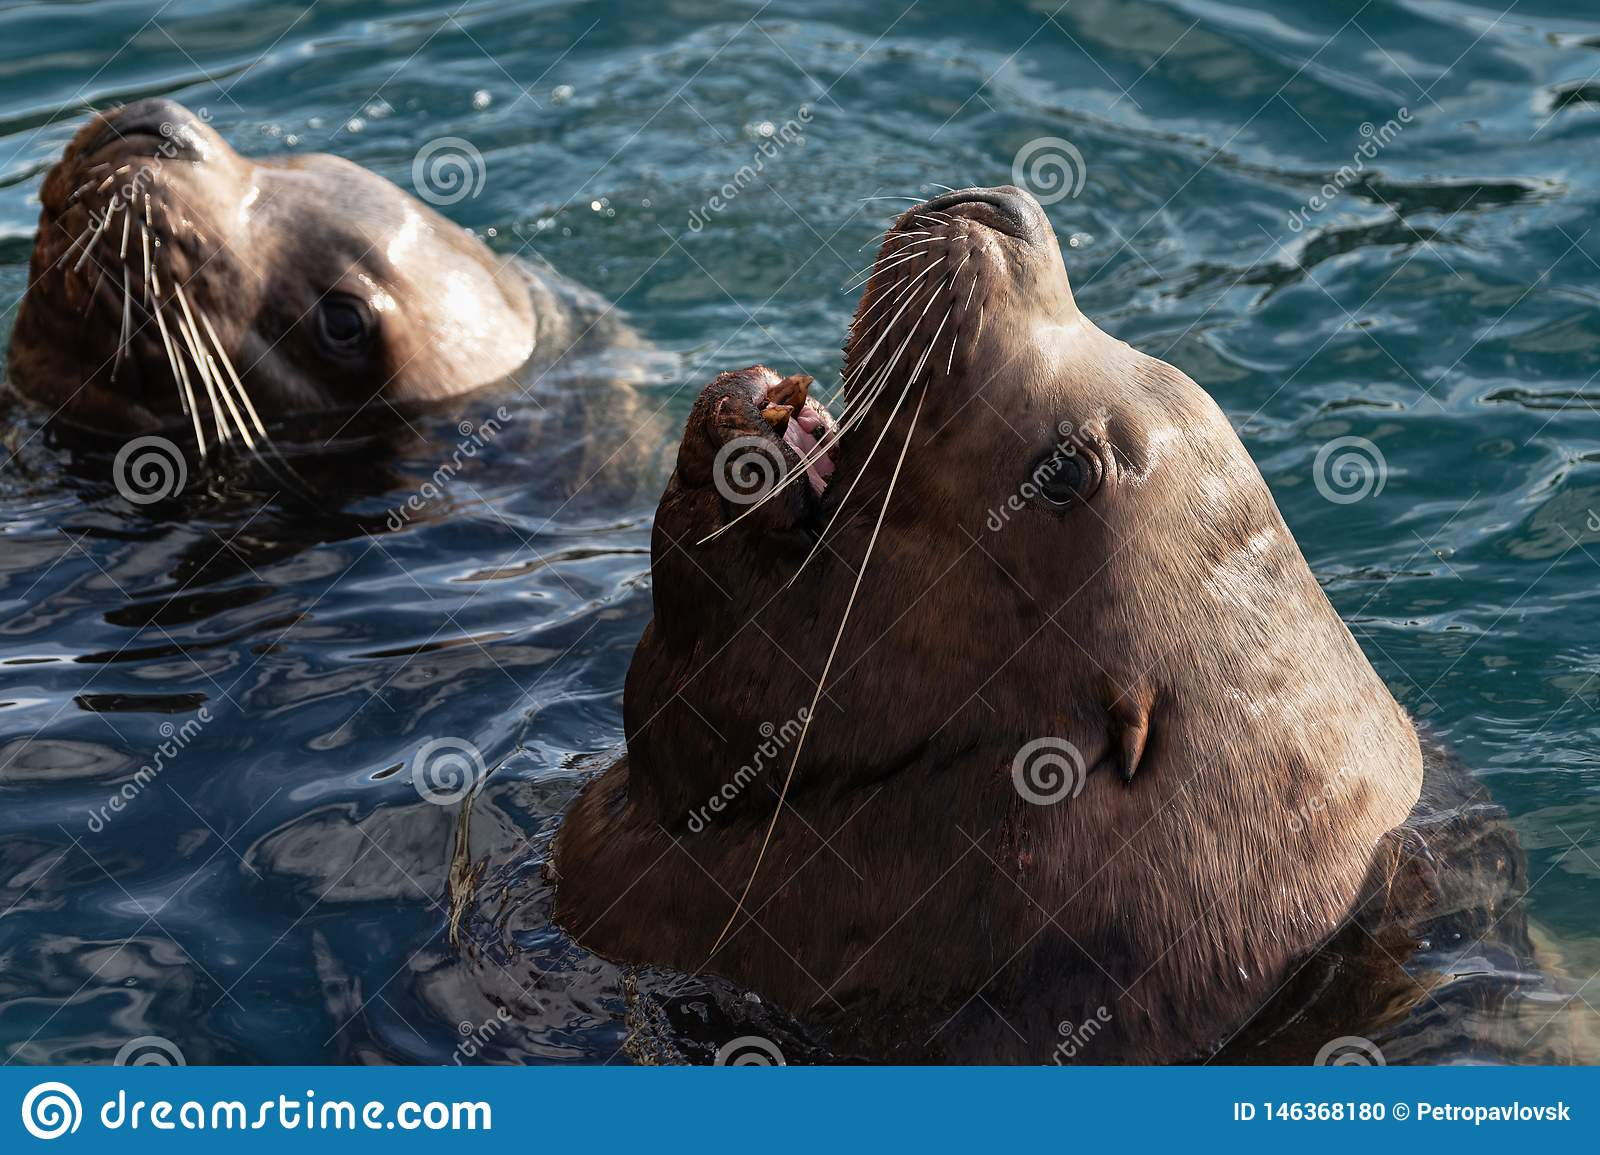 Wild Steller Sea Lion Eumetopias Jubatus with open mouth and teeth fangs swims in cold waves Pacific Ocean